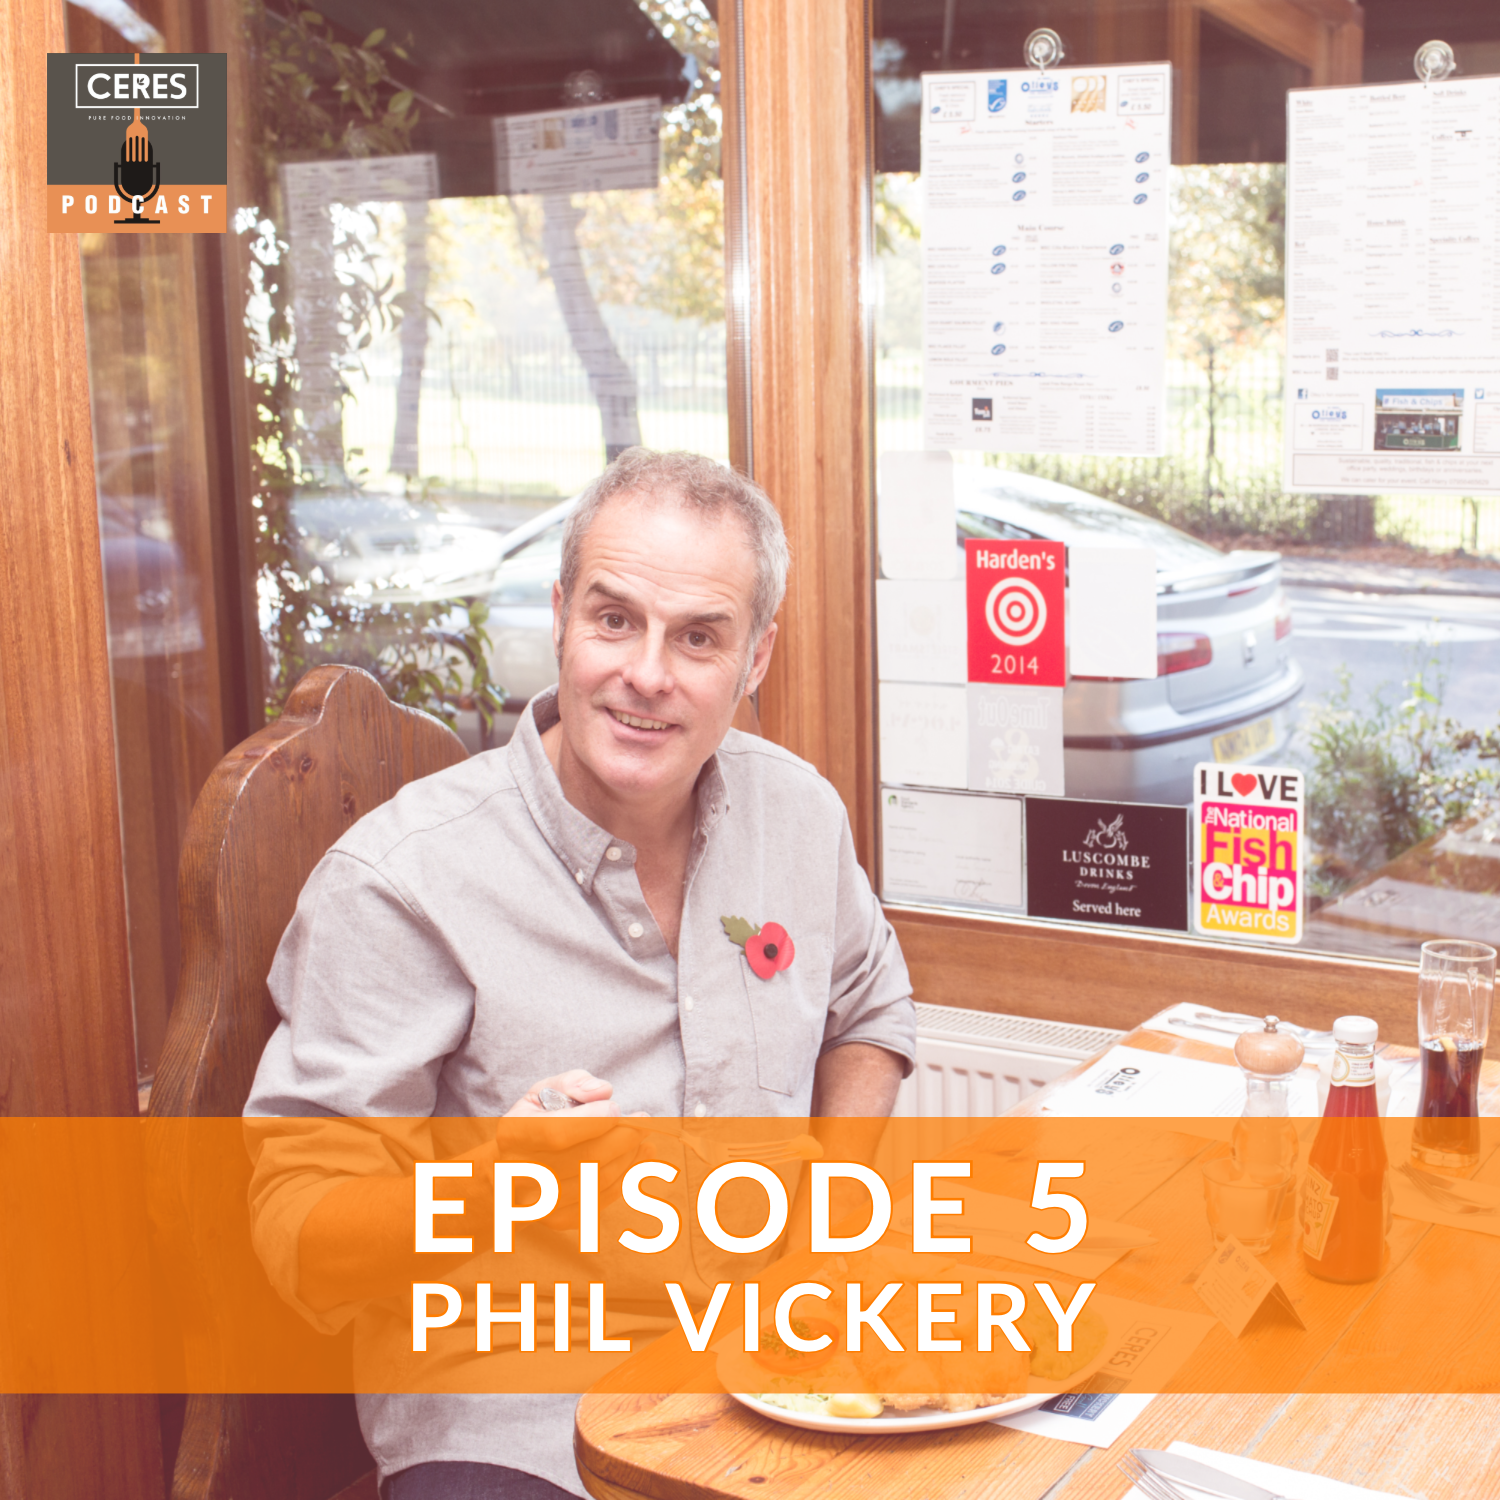 Phil Vickery episode cover art